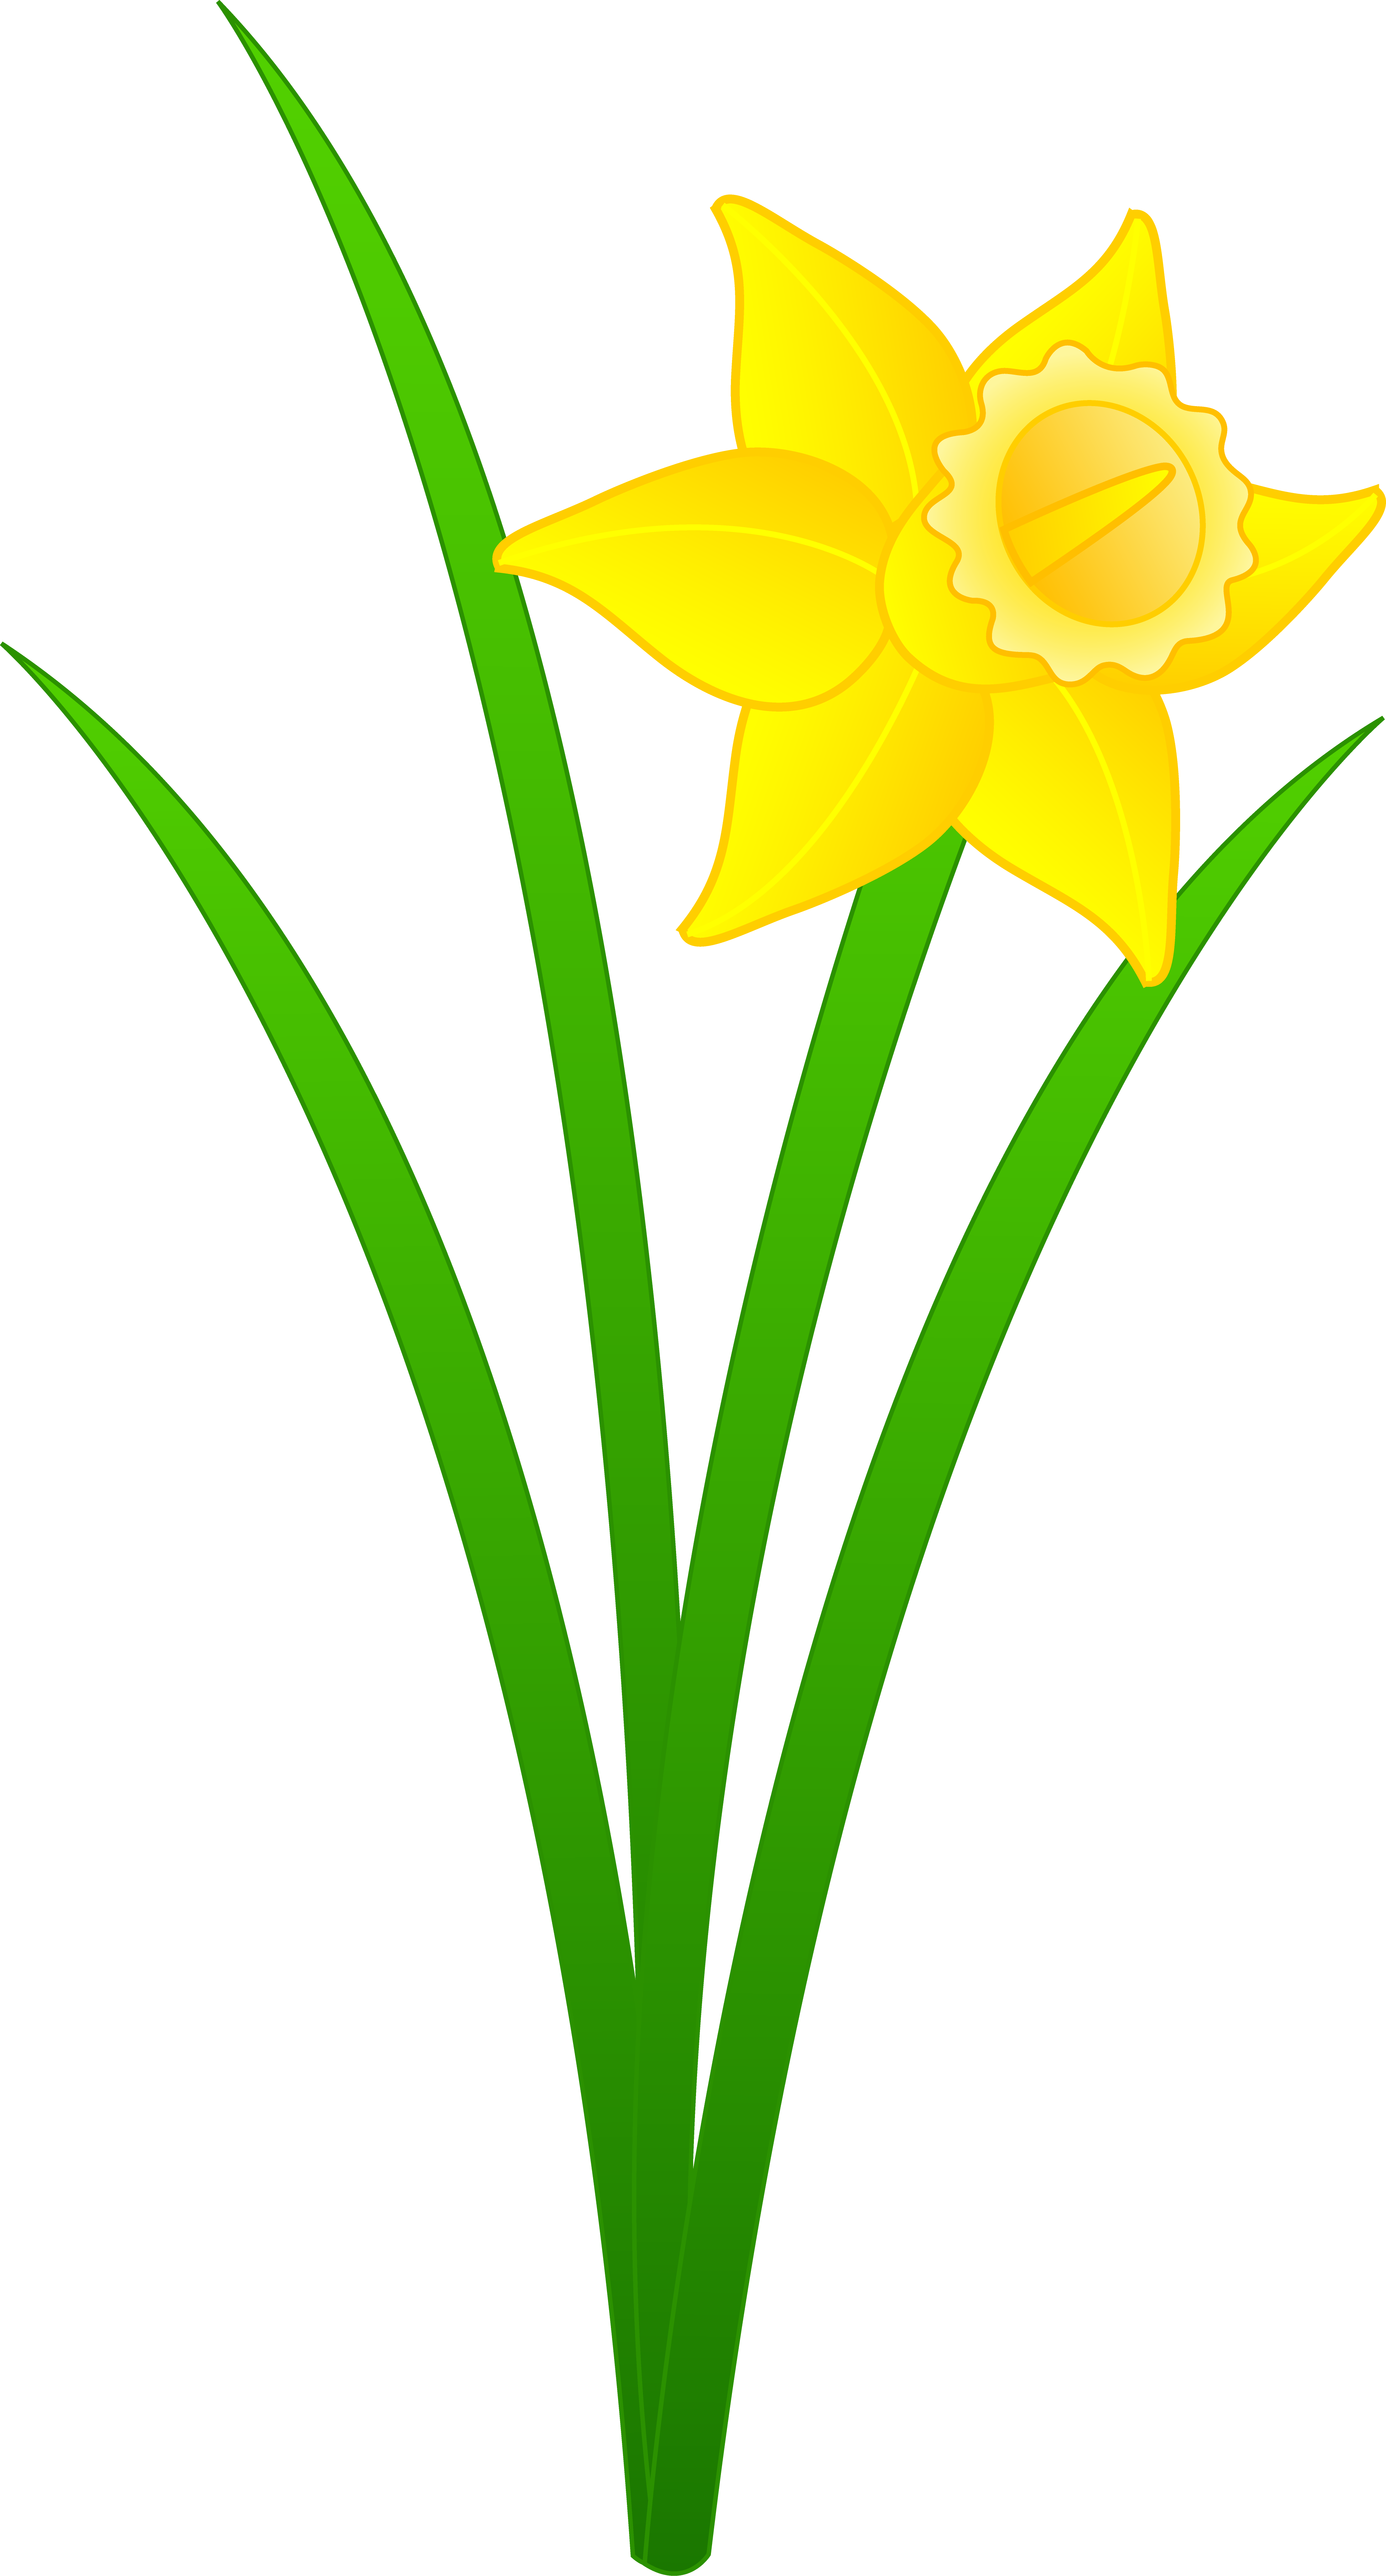 Yellow daffodil flower clipart. Narcissus drawing cartoon svg freeuse library